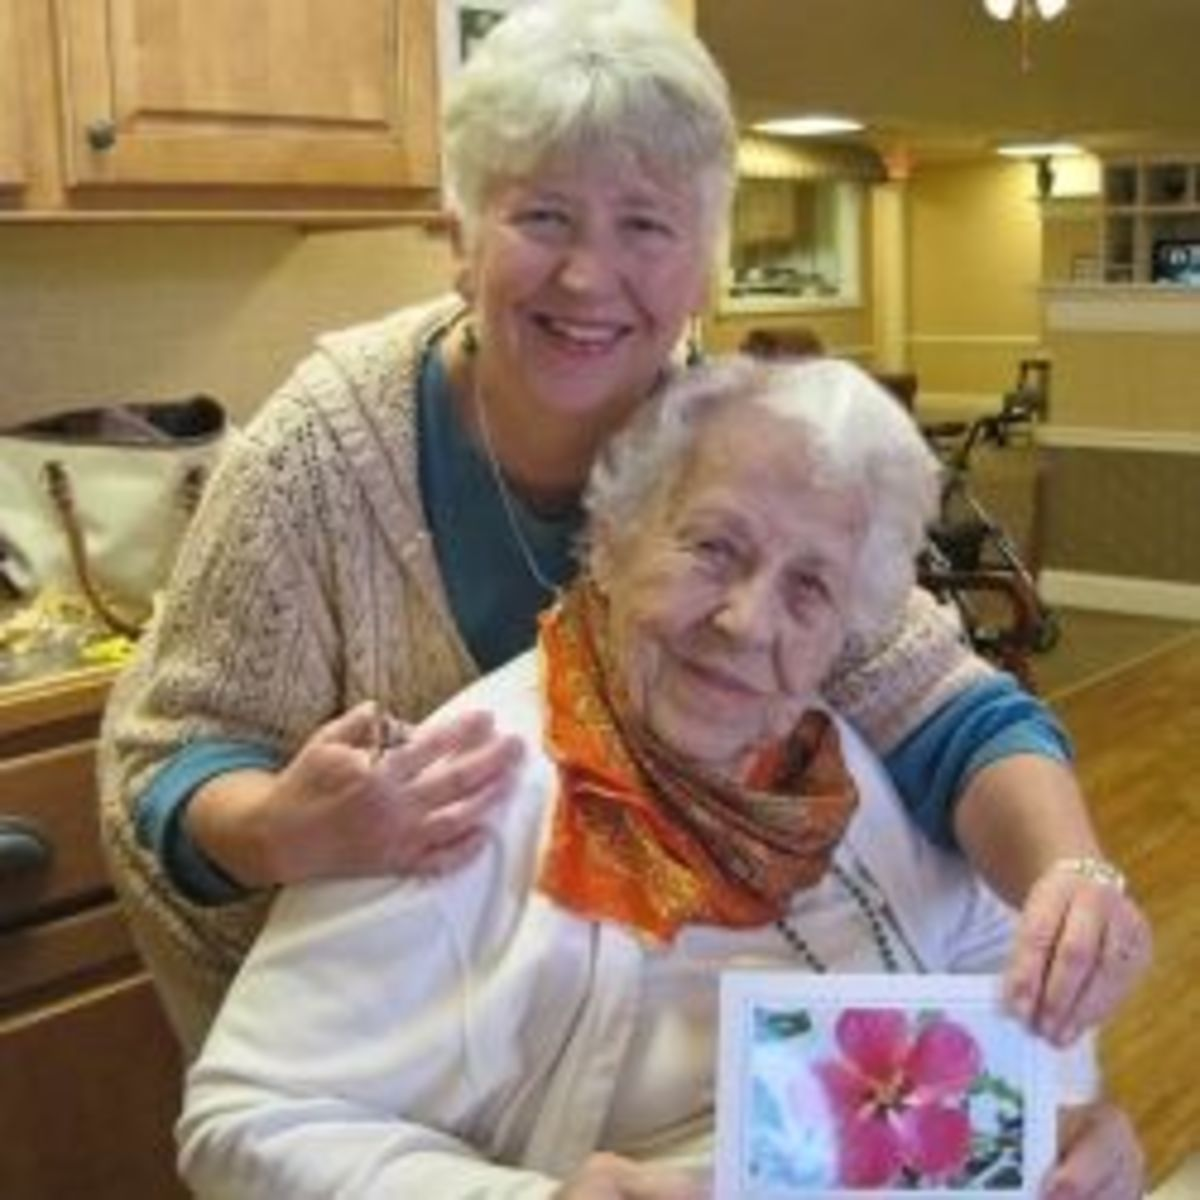 Crafts and activities for people with alzheimer 39 s hubpages for Crafts for older adults